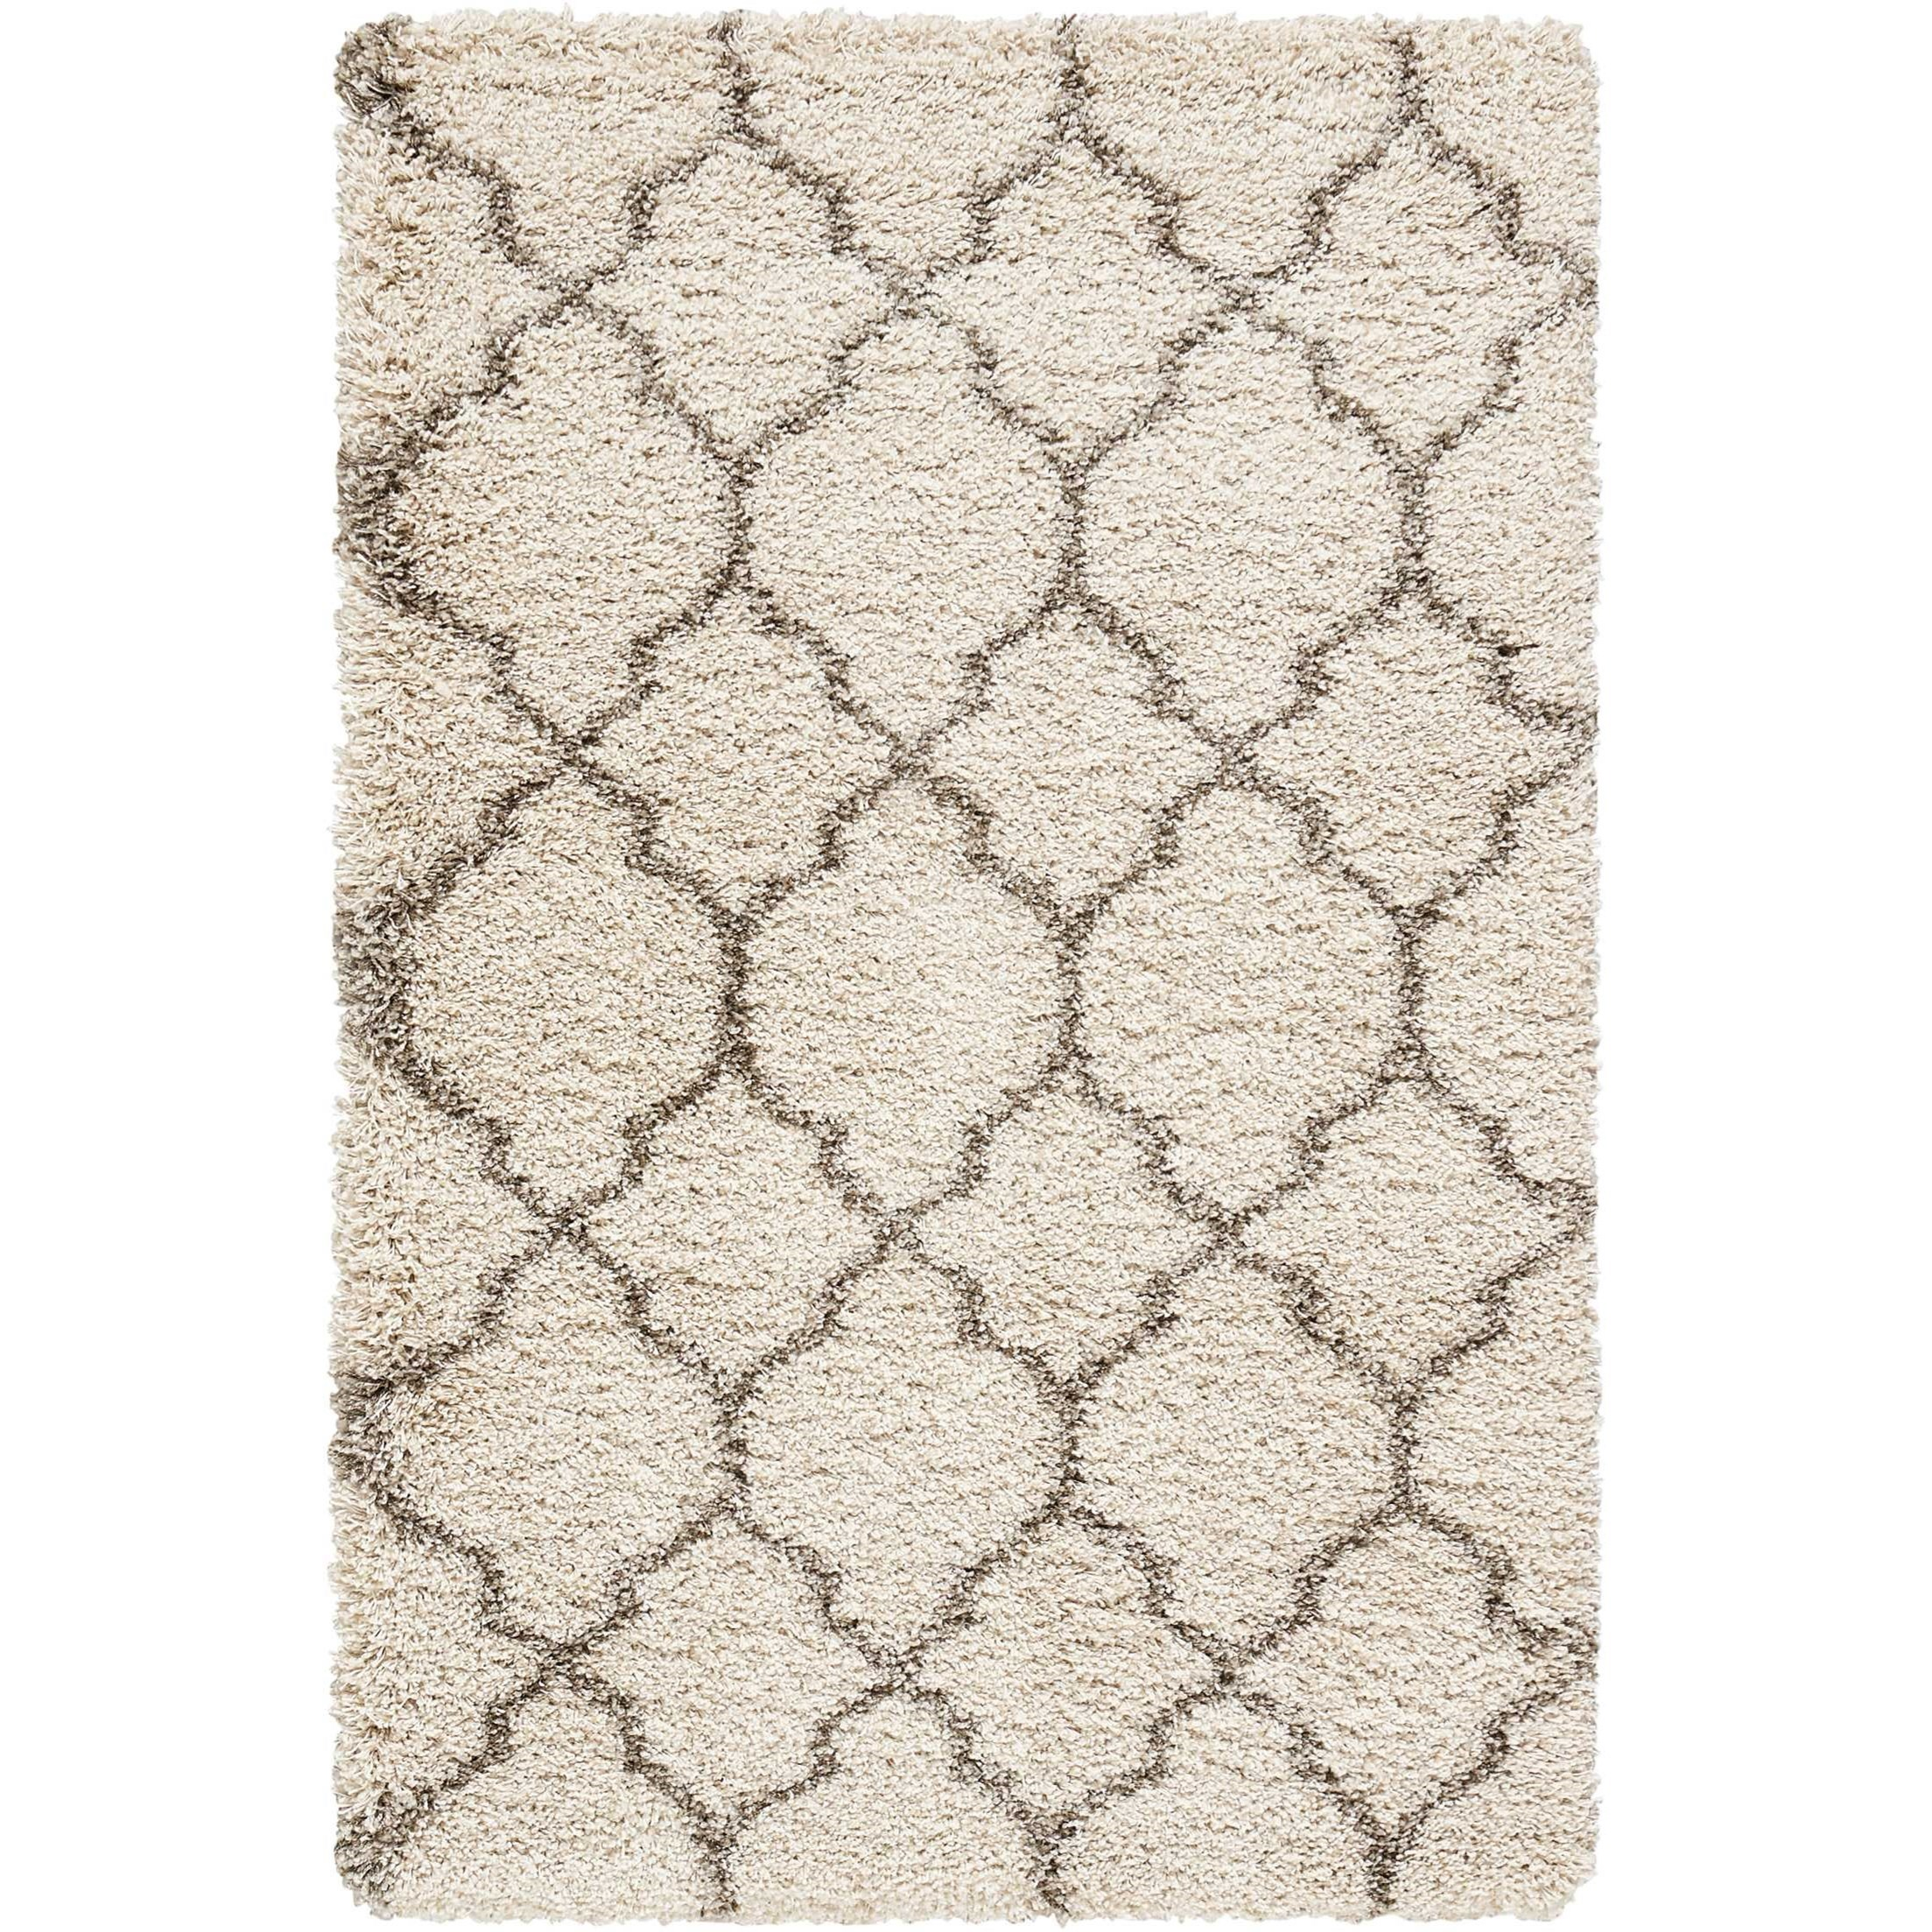 Amore Amore AMOR2 Beige 3'x5' Area Rug by Nourison at Home Collections Furniture